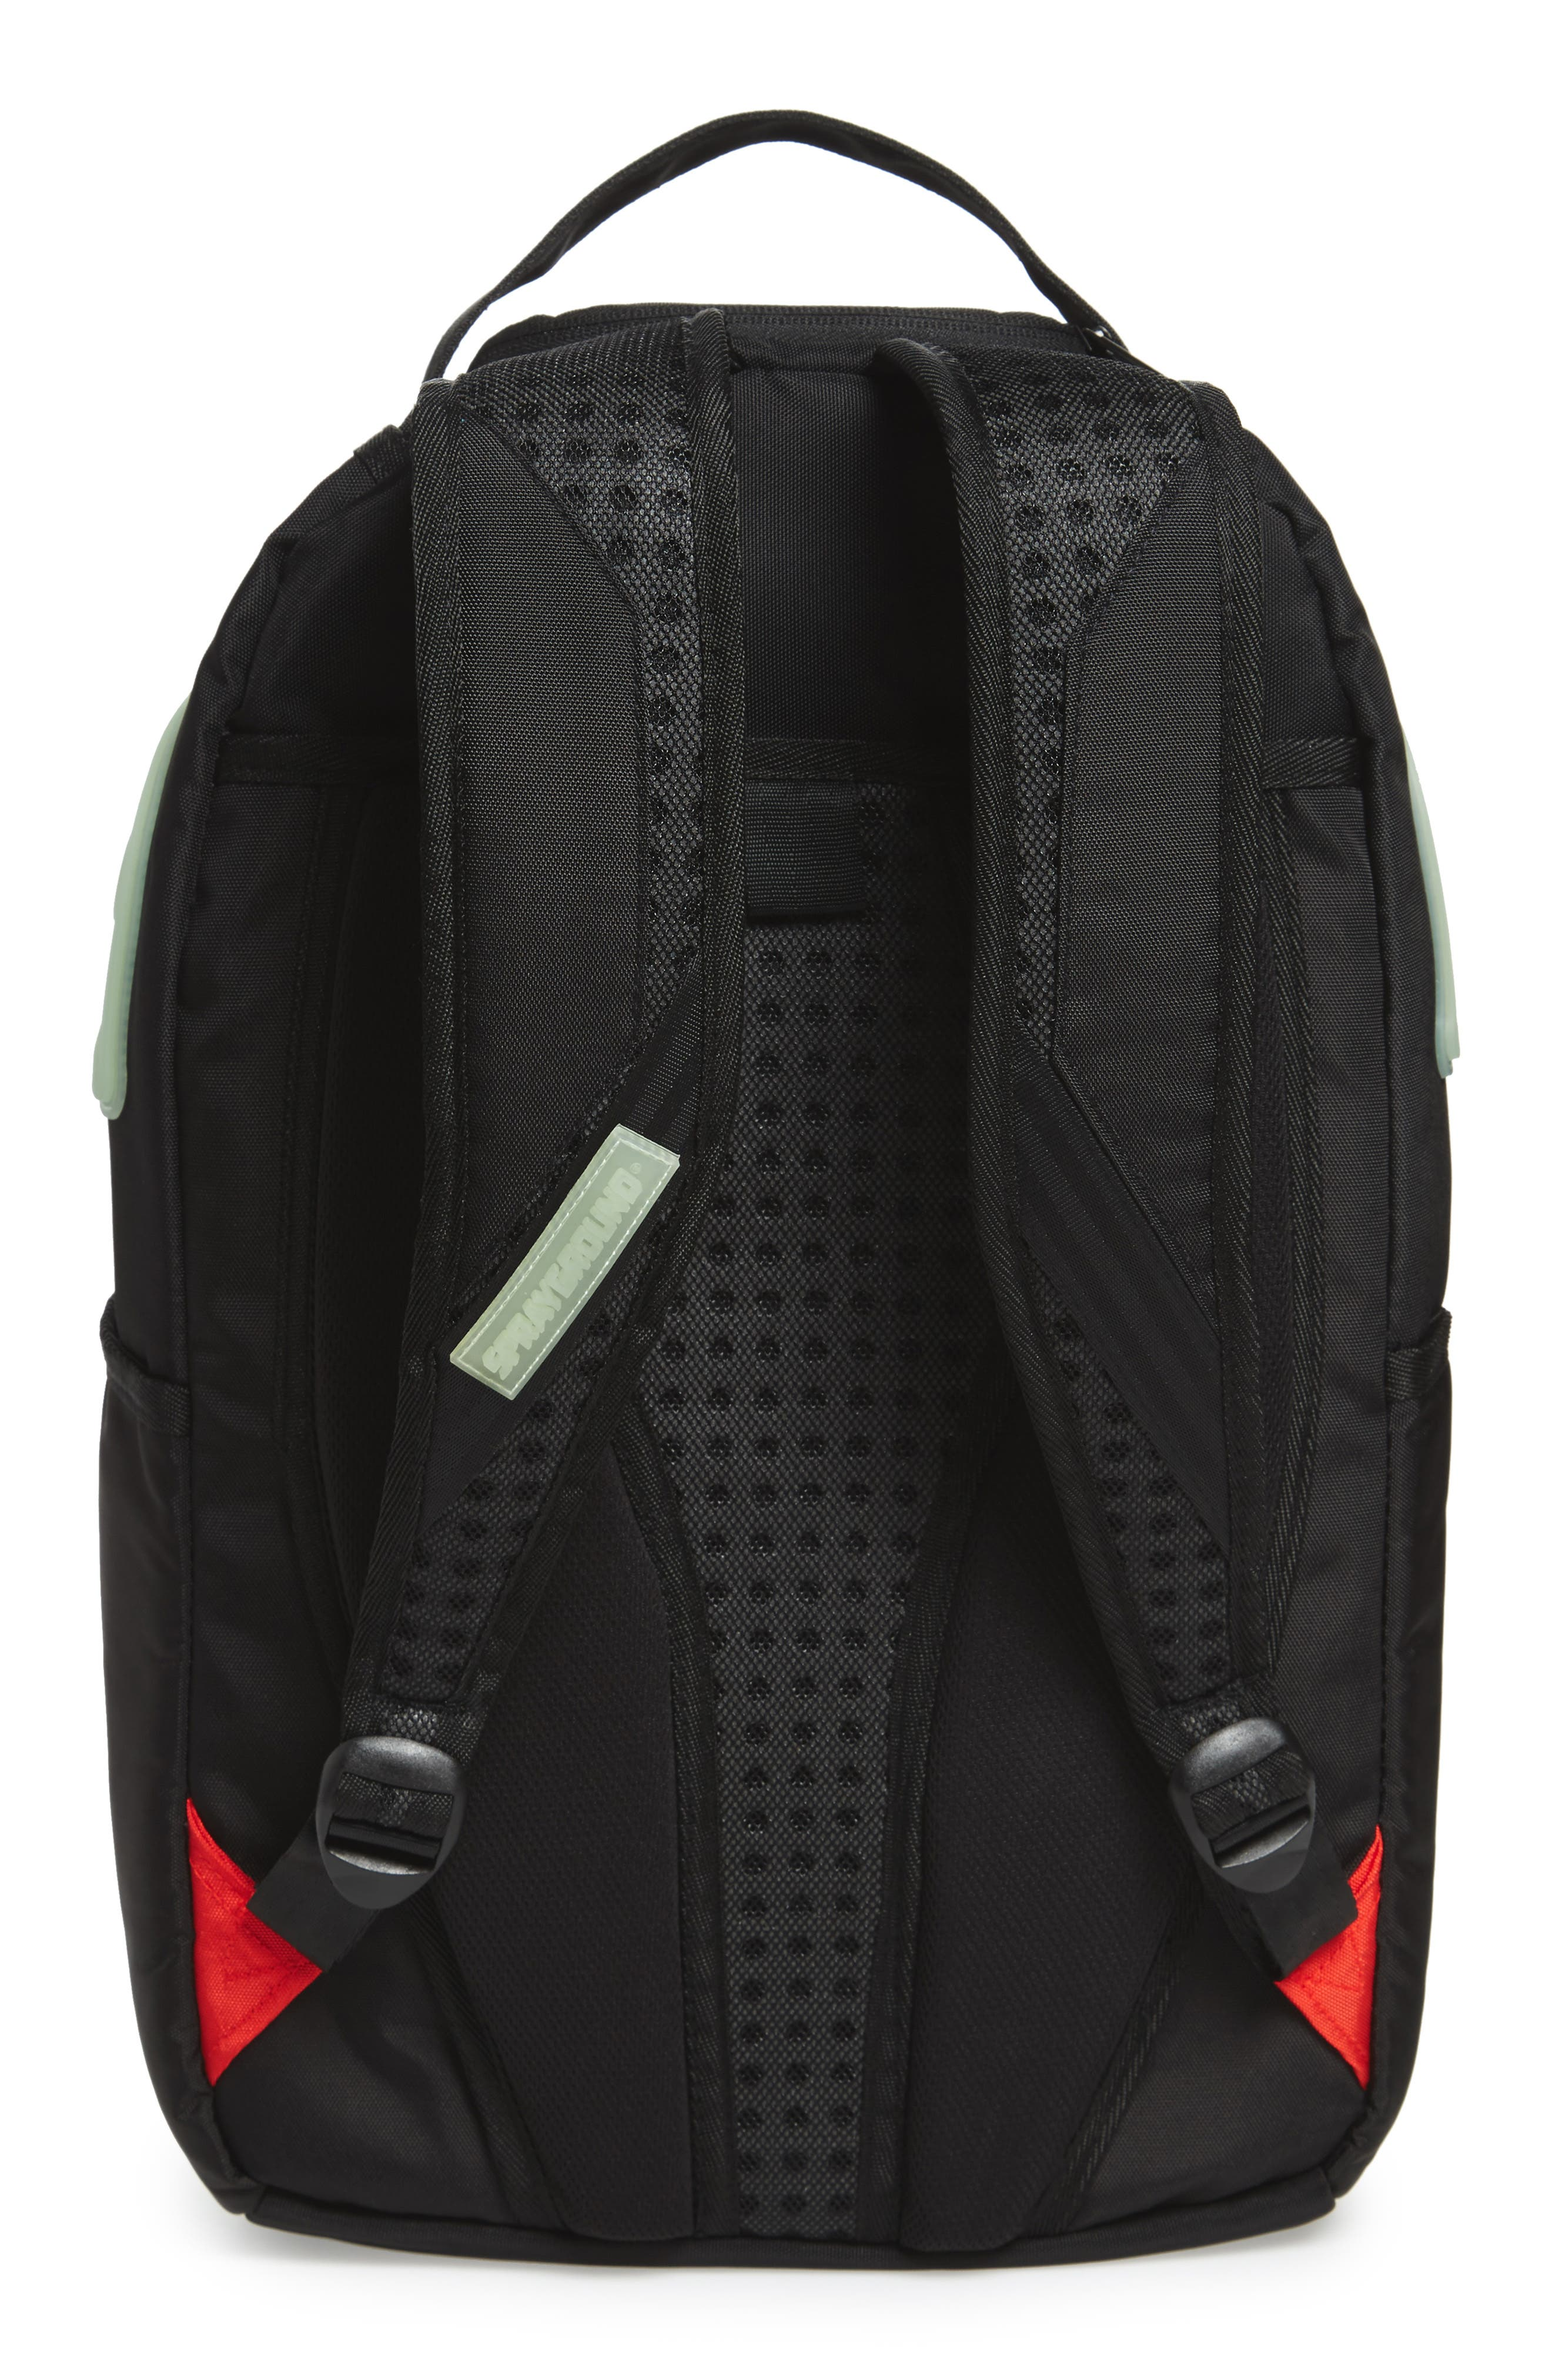 Glow in the Dark Shark Backpack,                             Alternate thumbnail 2, color,                             Black